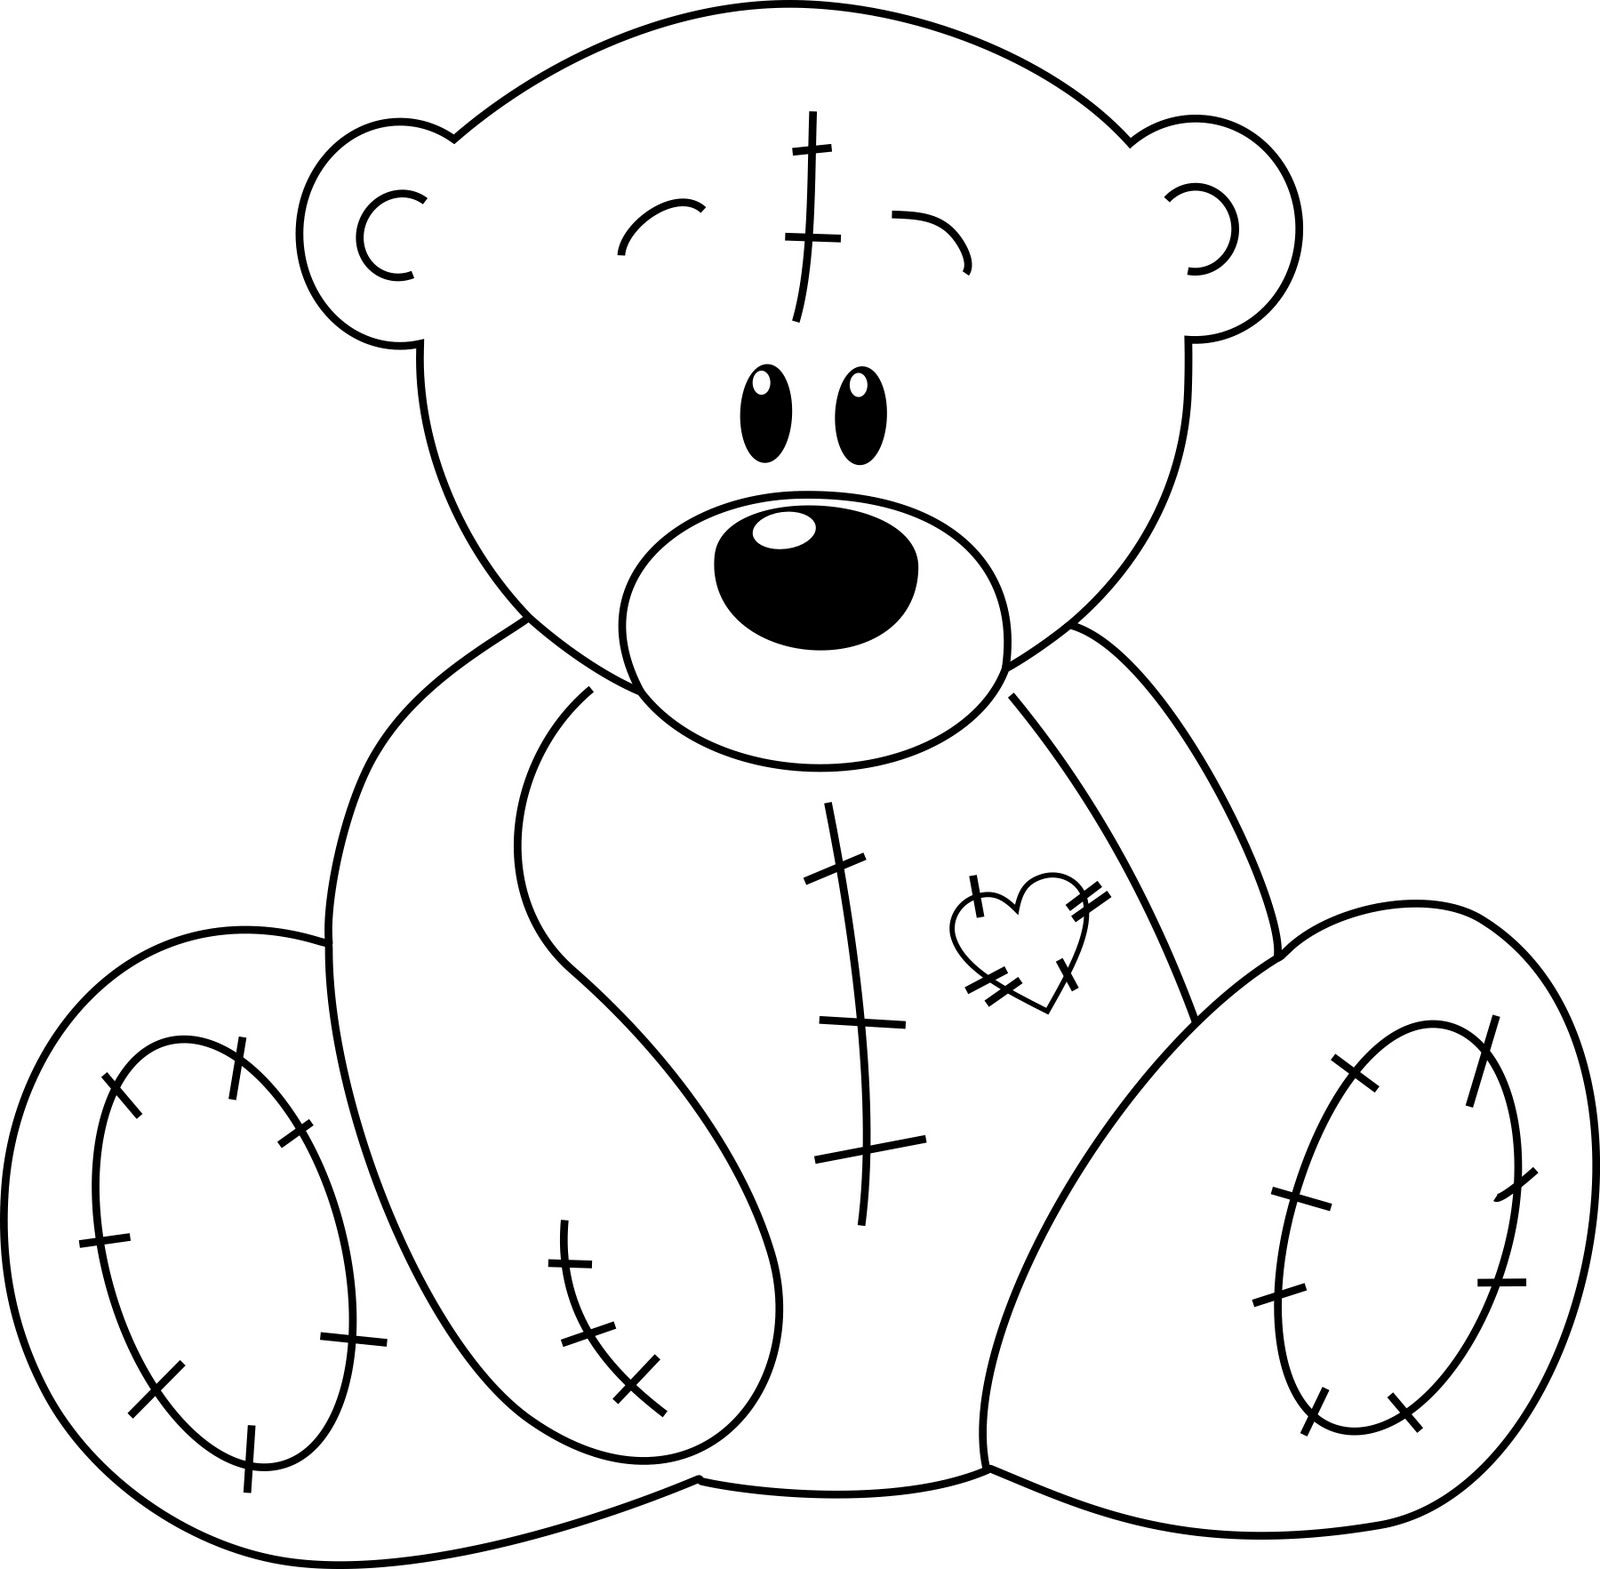 Pin by Tay Finder Rosa on Free Digis  Teddy bear coloring pages